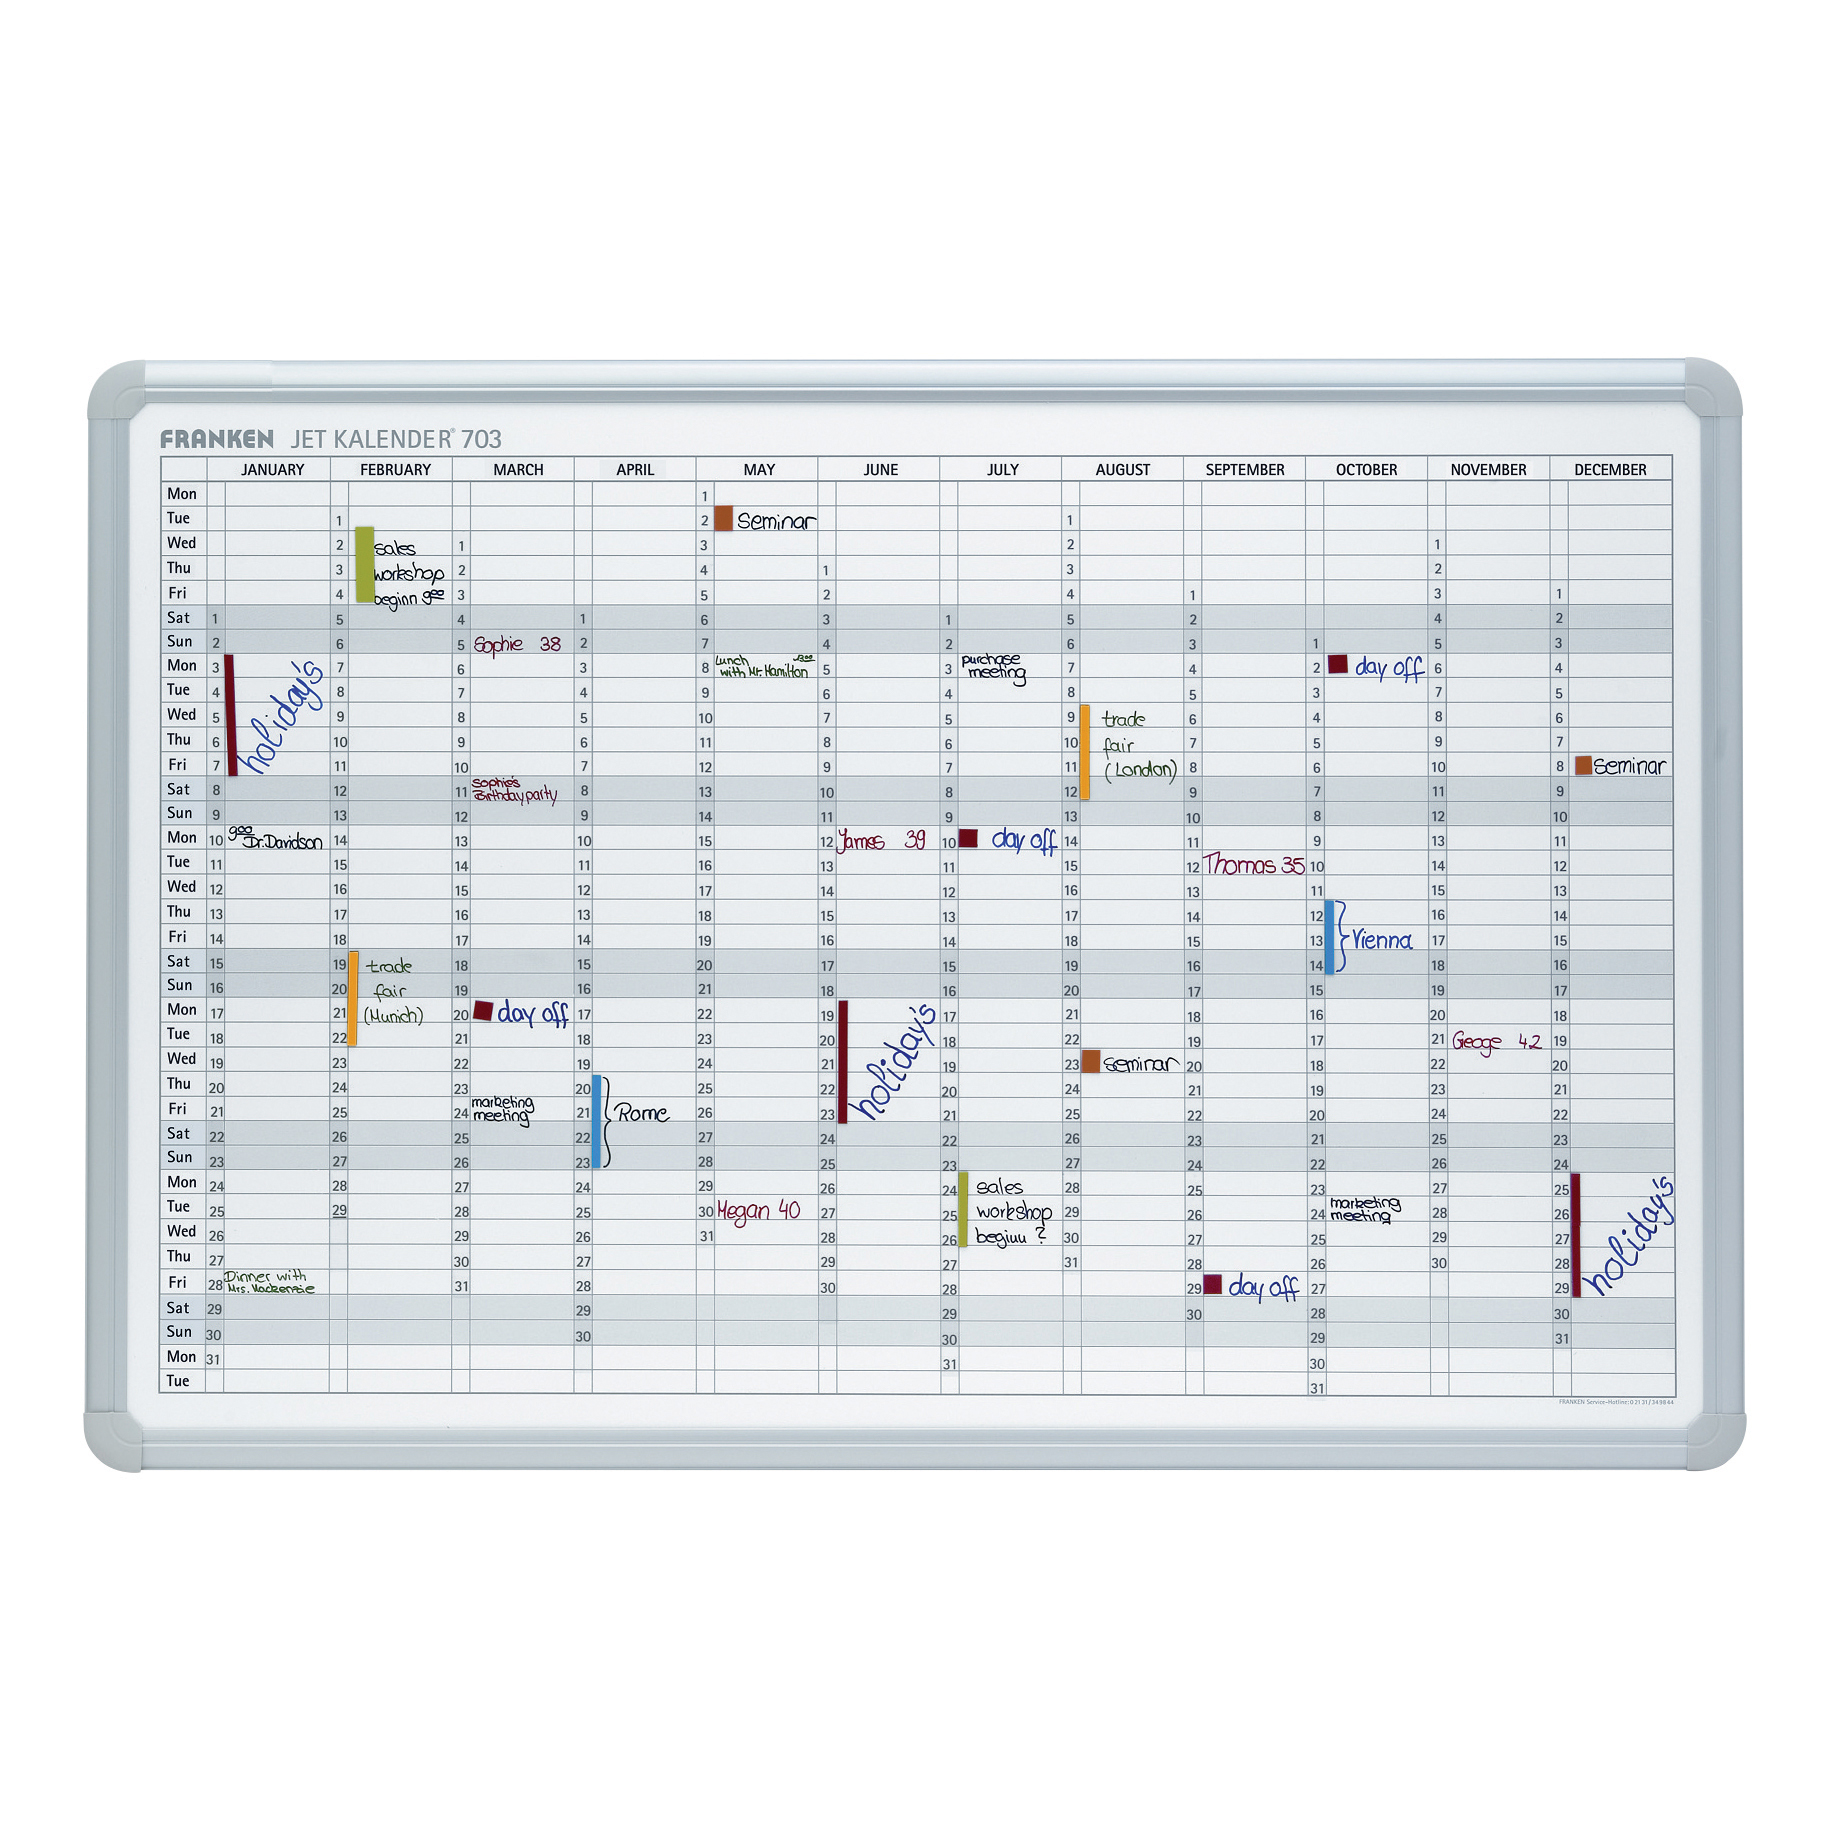 Calendars Franken Perpetual Year Calendar Planner with 2 Markers 3 Magnets Day Grid 57x13mm W900xH600mm Ref JK703GB